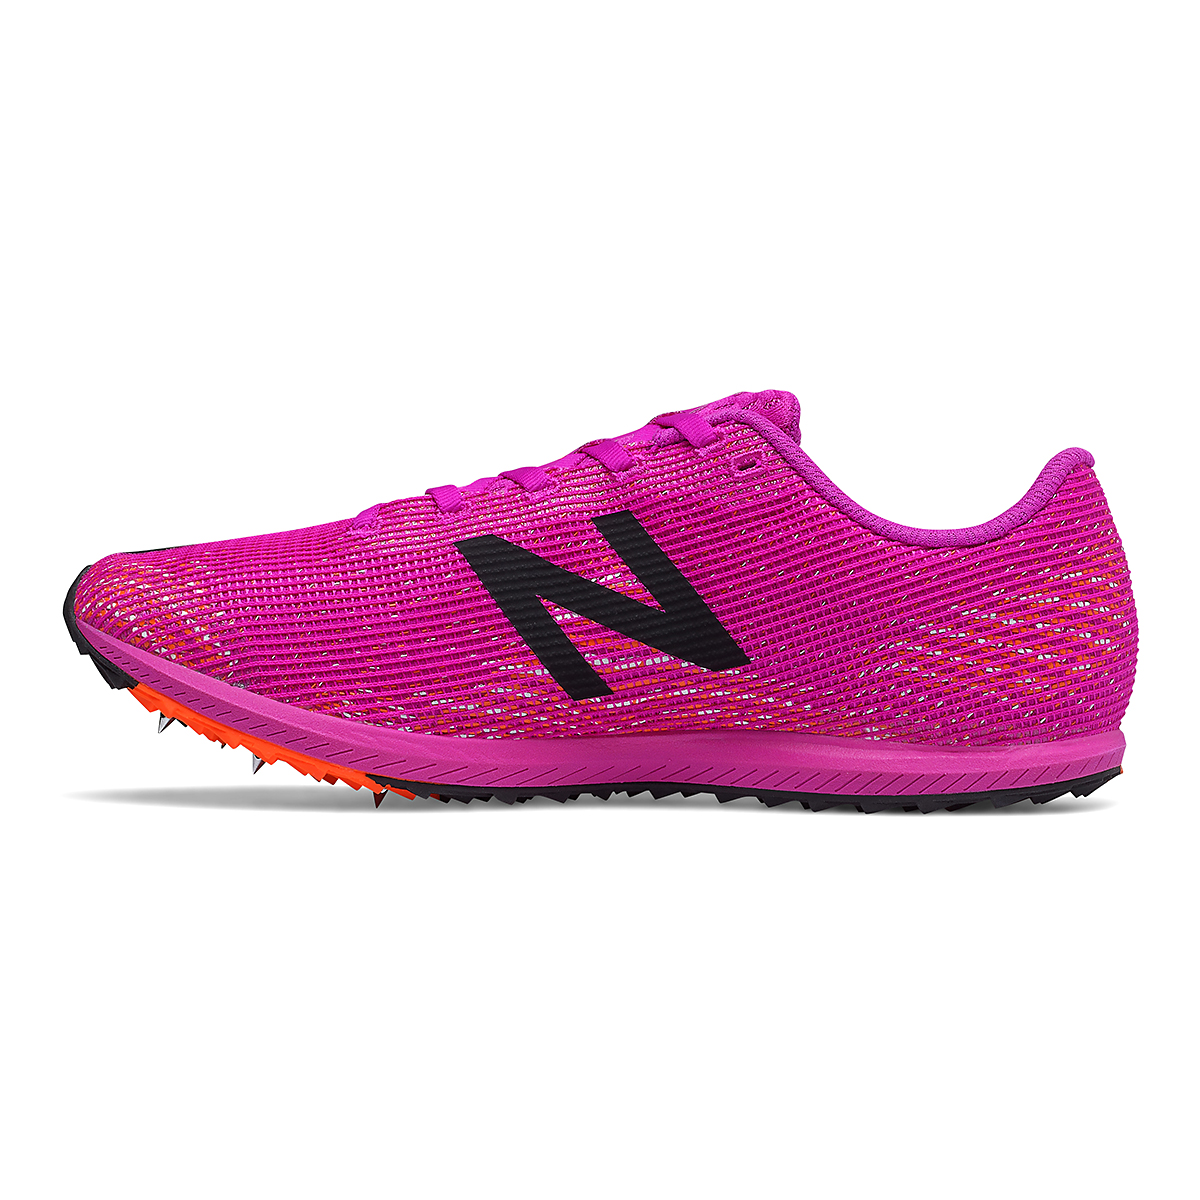 Women's New Balance XC Seven v3 Track Spikes - Color: Poison Berry/Dynomite - Size: 5.5 - Width: Regular, Poison Berry/Dynomite, large, image 2